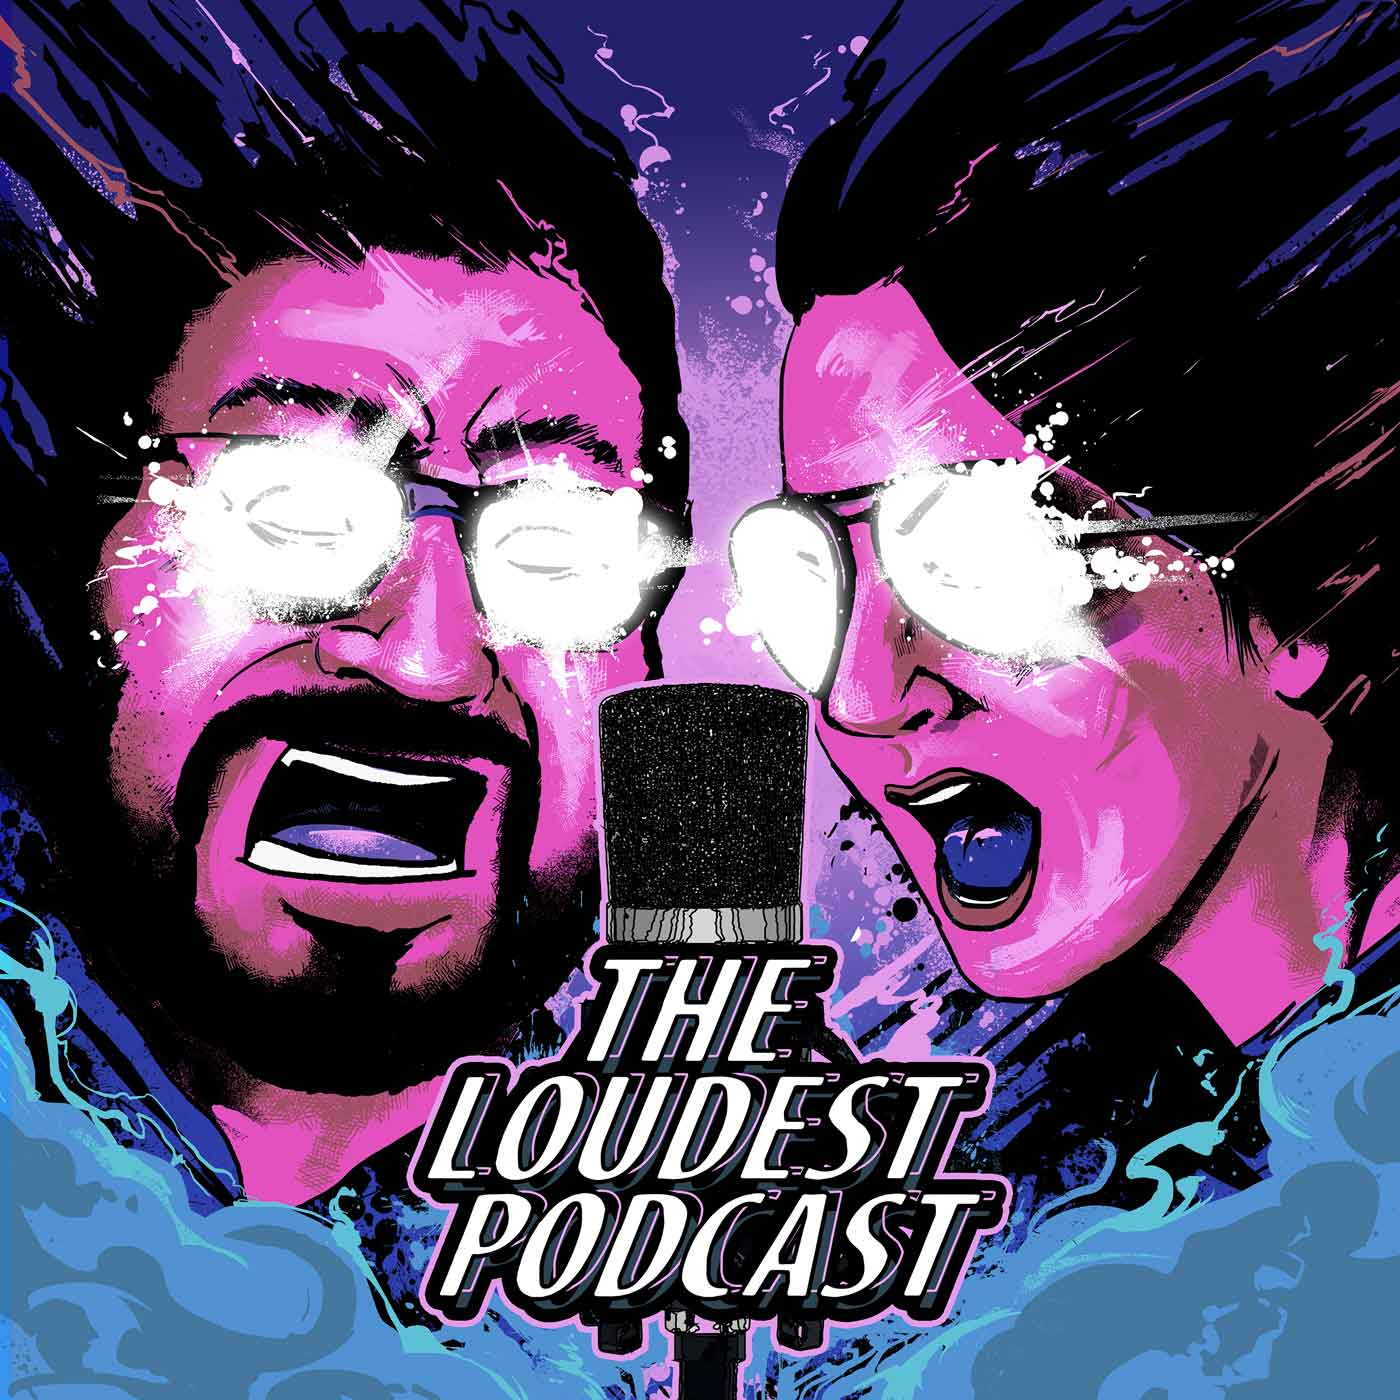 THE LOUDEST PODCAST #12: Law School Virgin